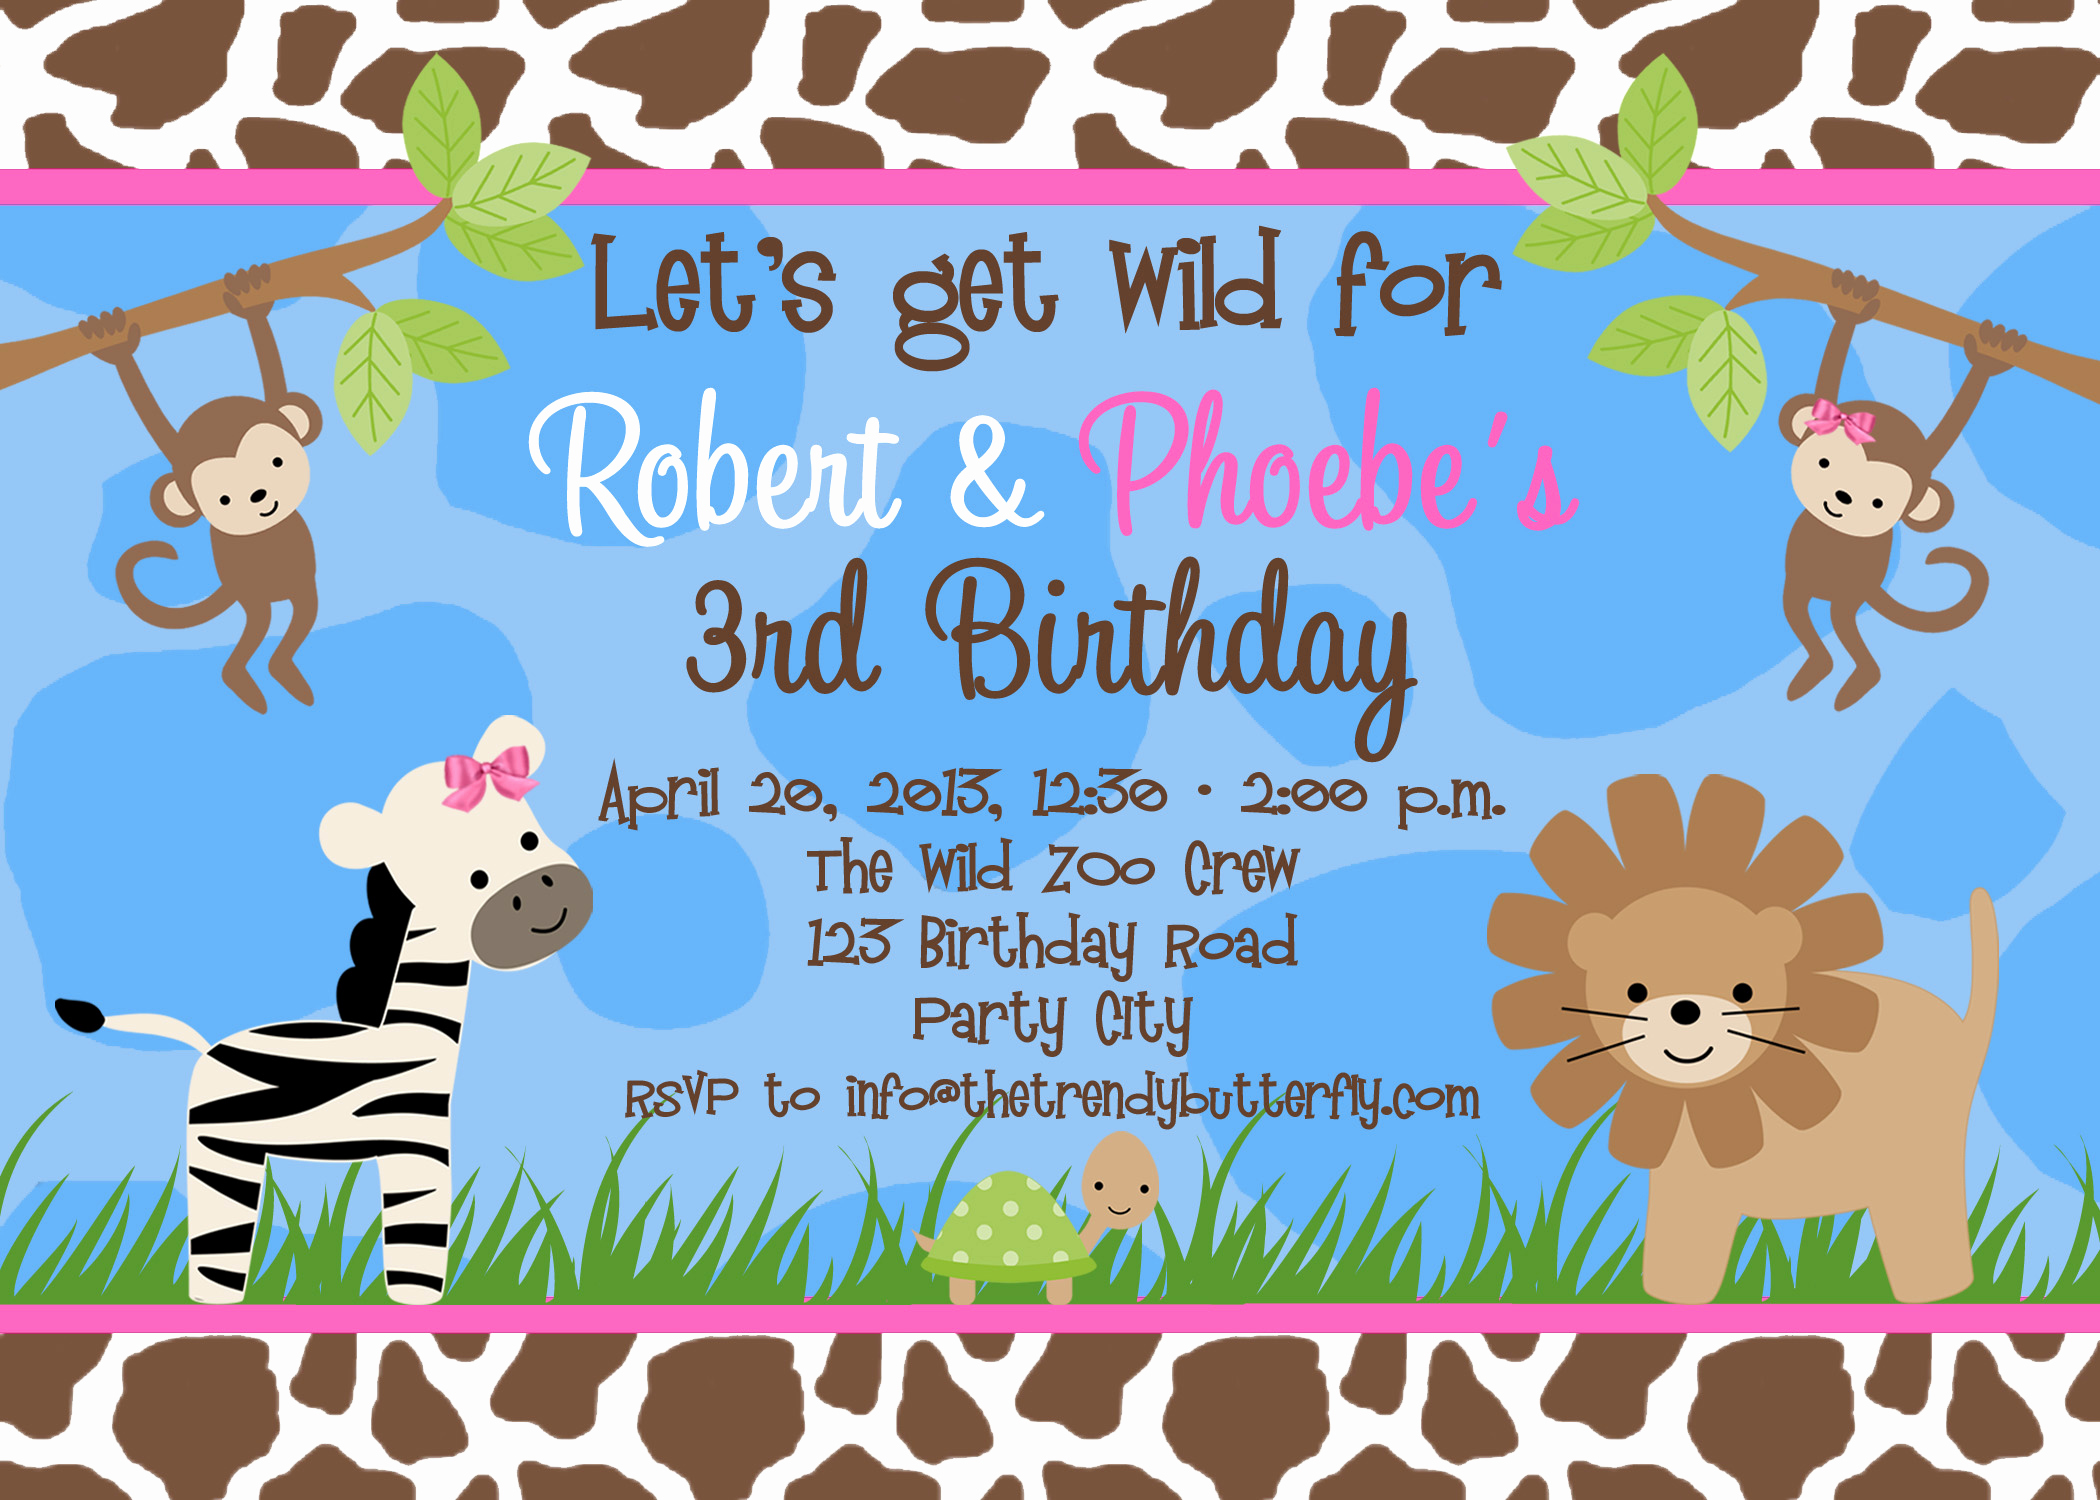 Free Birthday Party Invitation Templates Best Of Free Birthday Party Invitation Templates